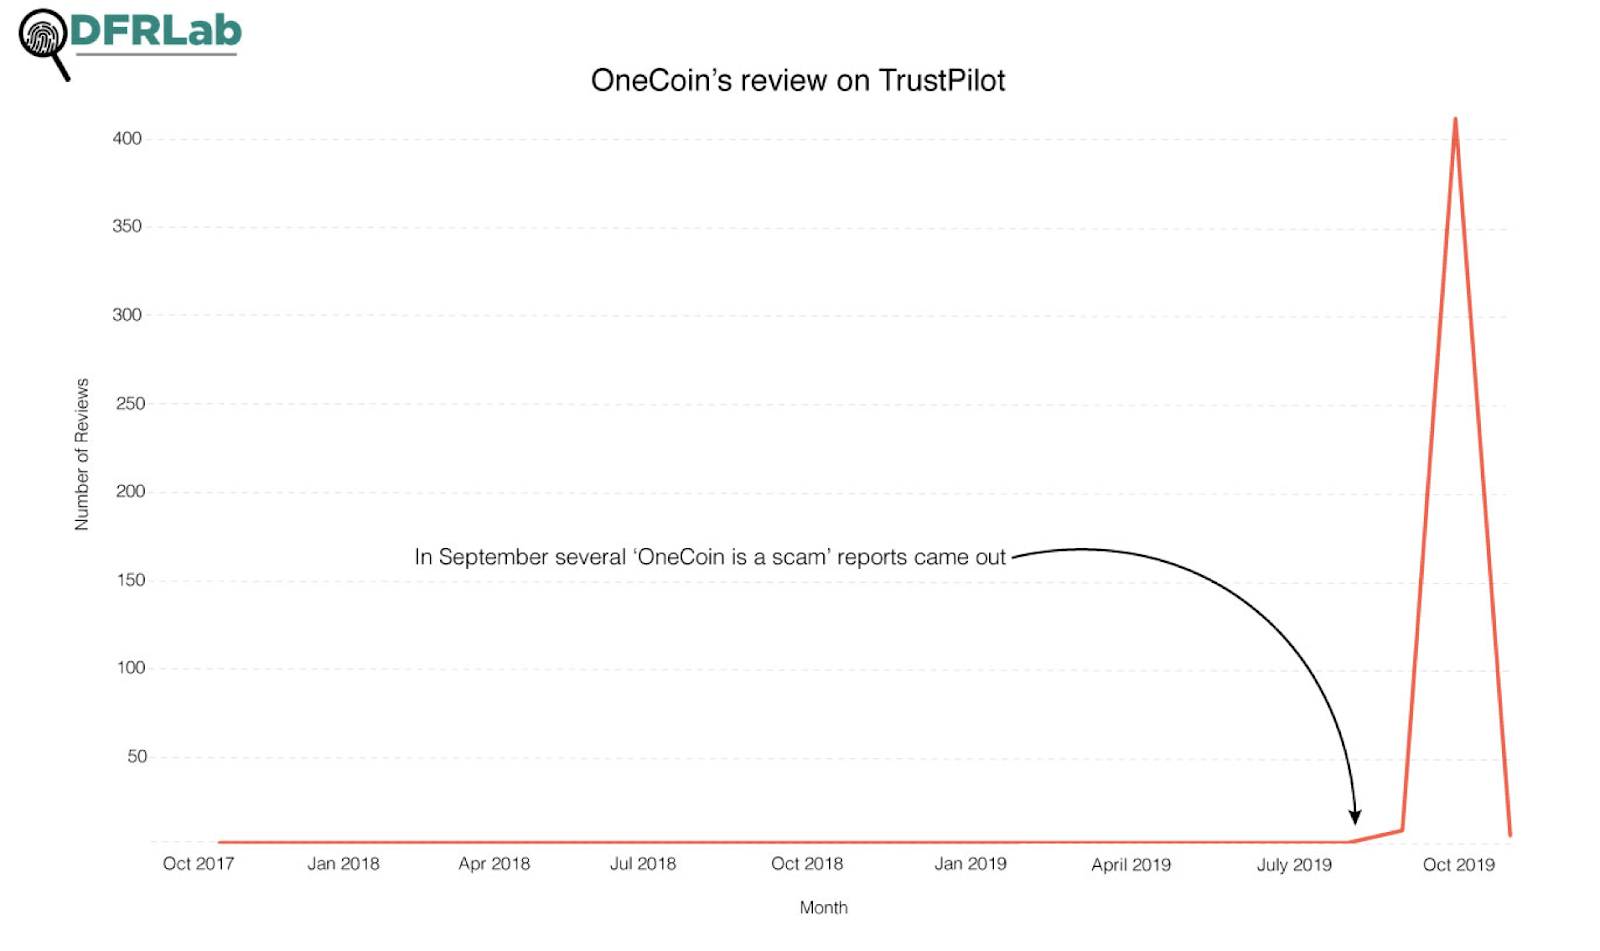 OneCoin's TrustPilot reviews over time